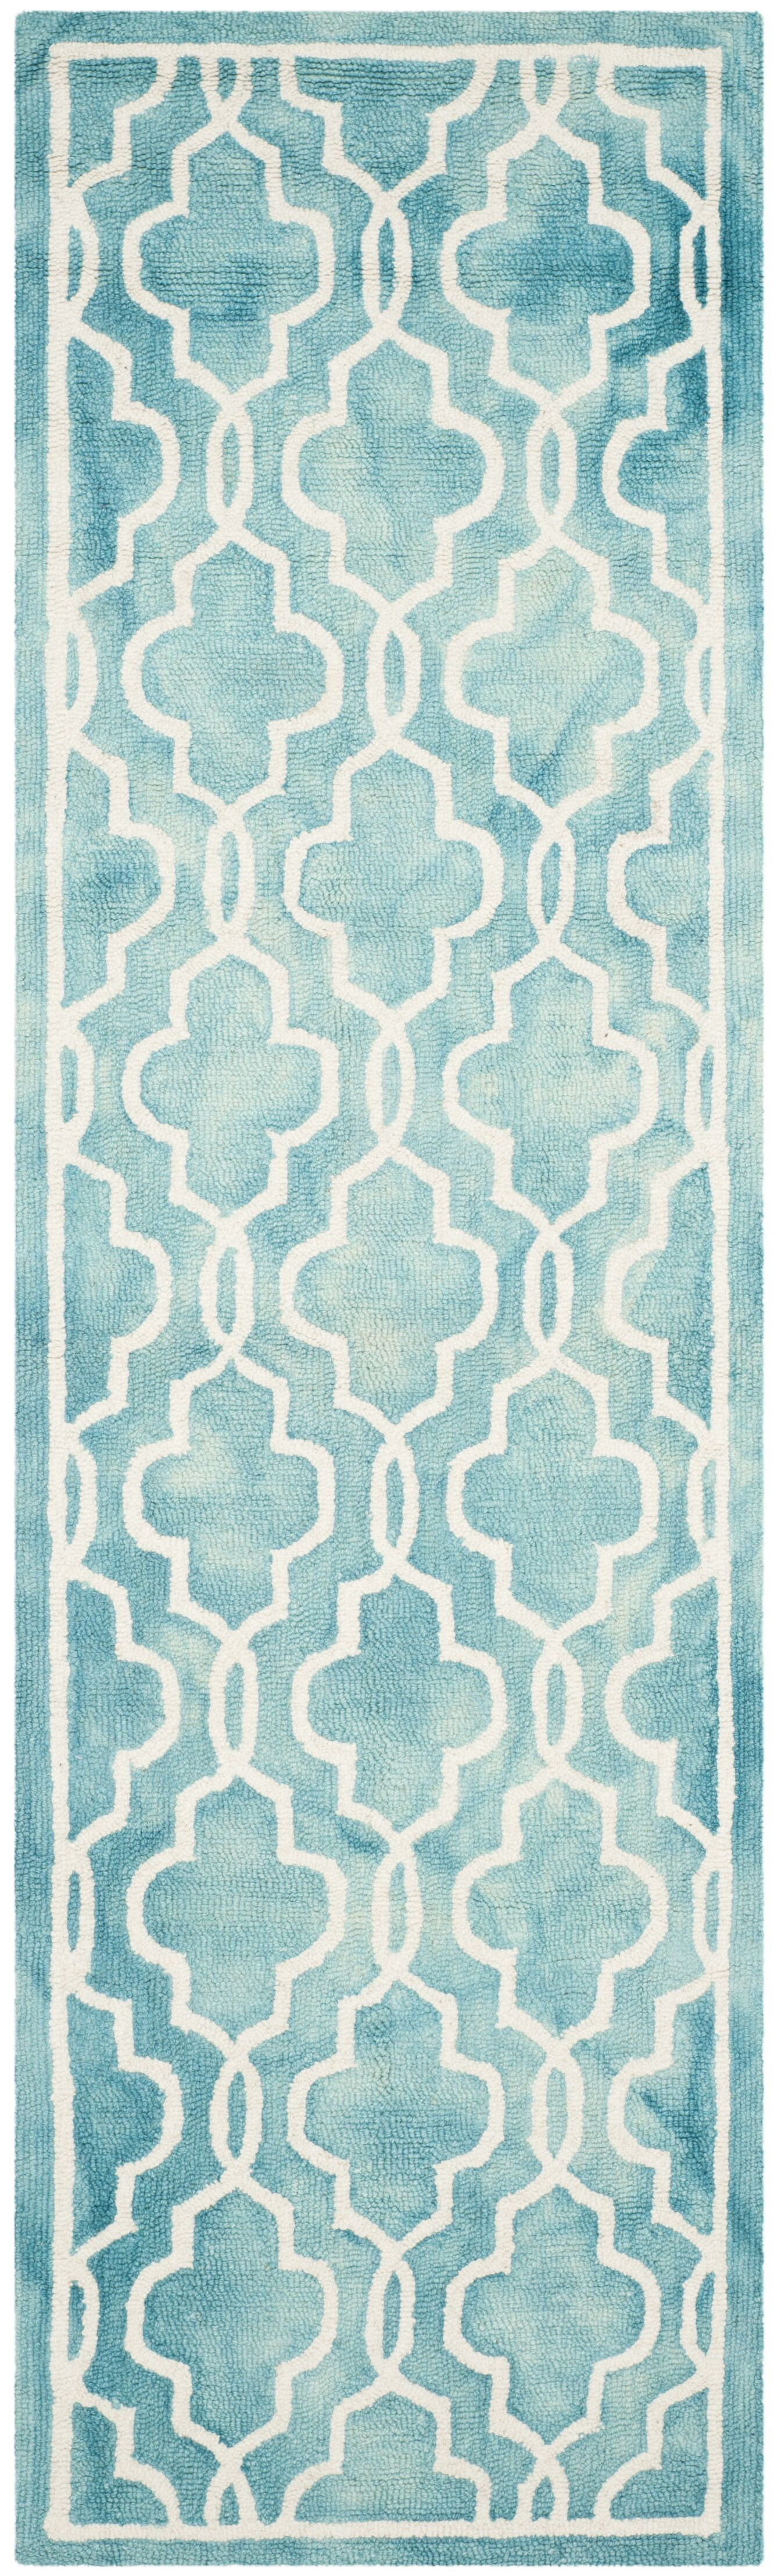 Gainsborough Hand-Tufted Turquoise/Ivory Area Rug Rug Size: Runner 2'3